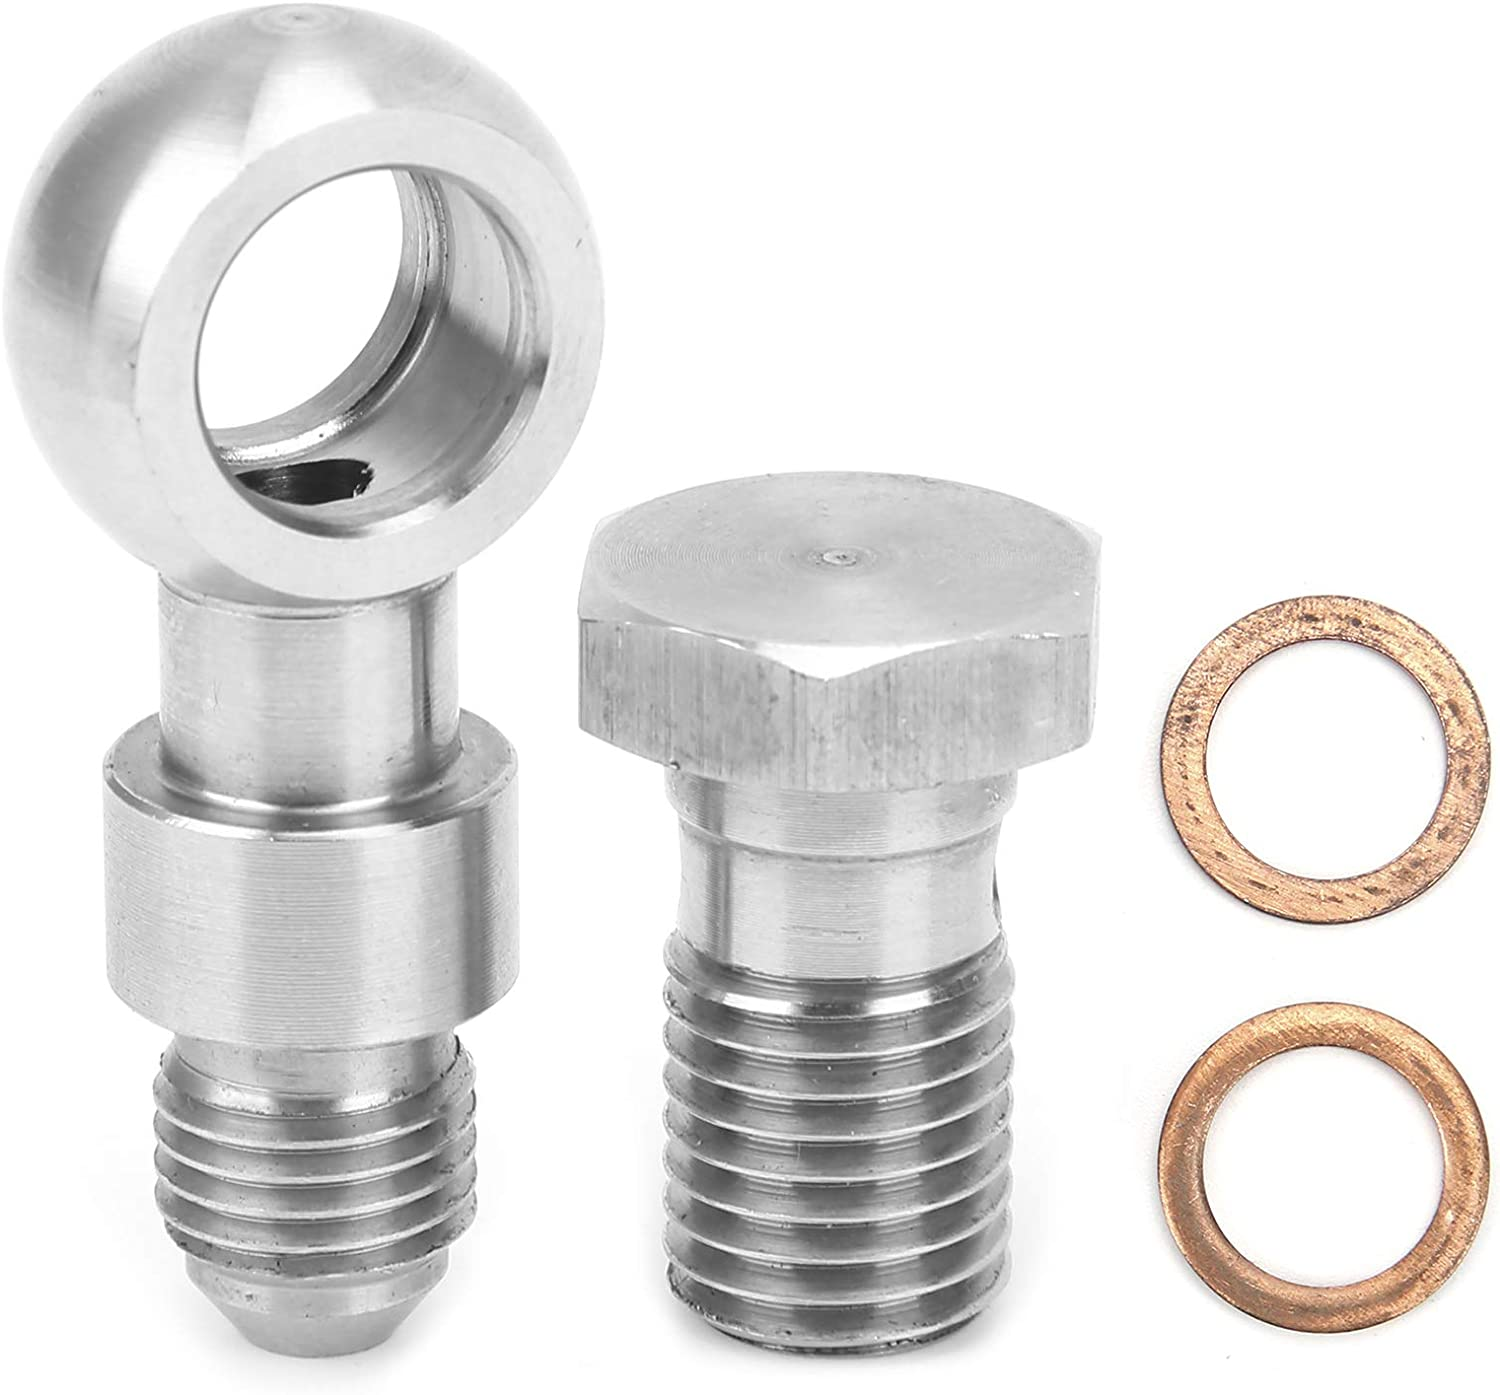 Fydun Stainless Steel Straight Philadelphia outlet Mall M12 Oil Feed to Bolt Banjo 12 mm